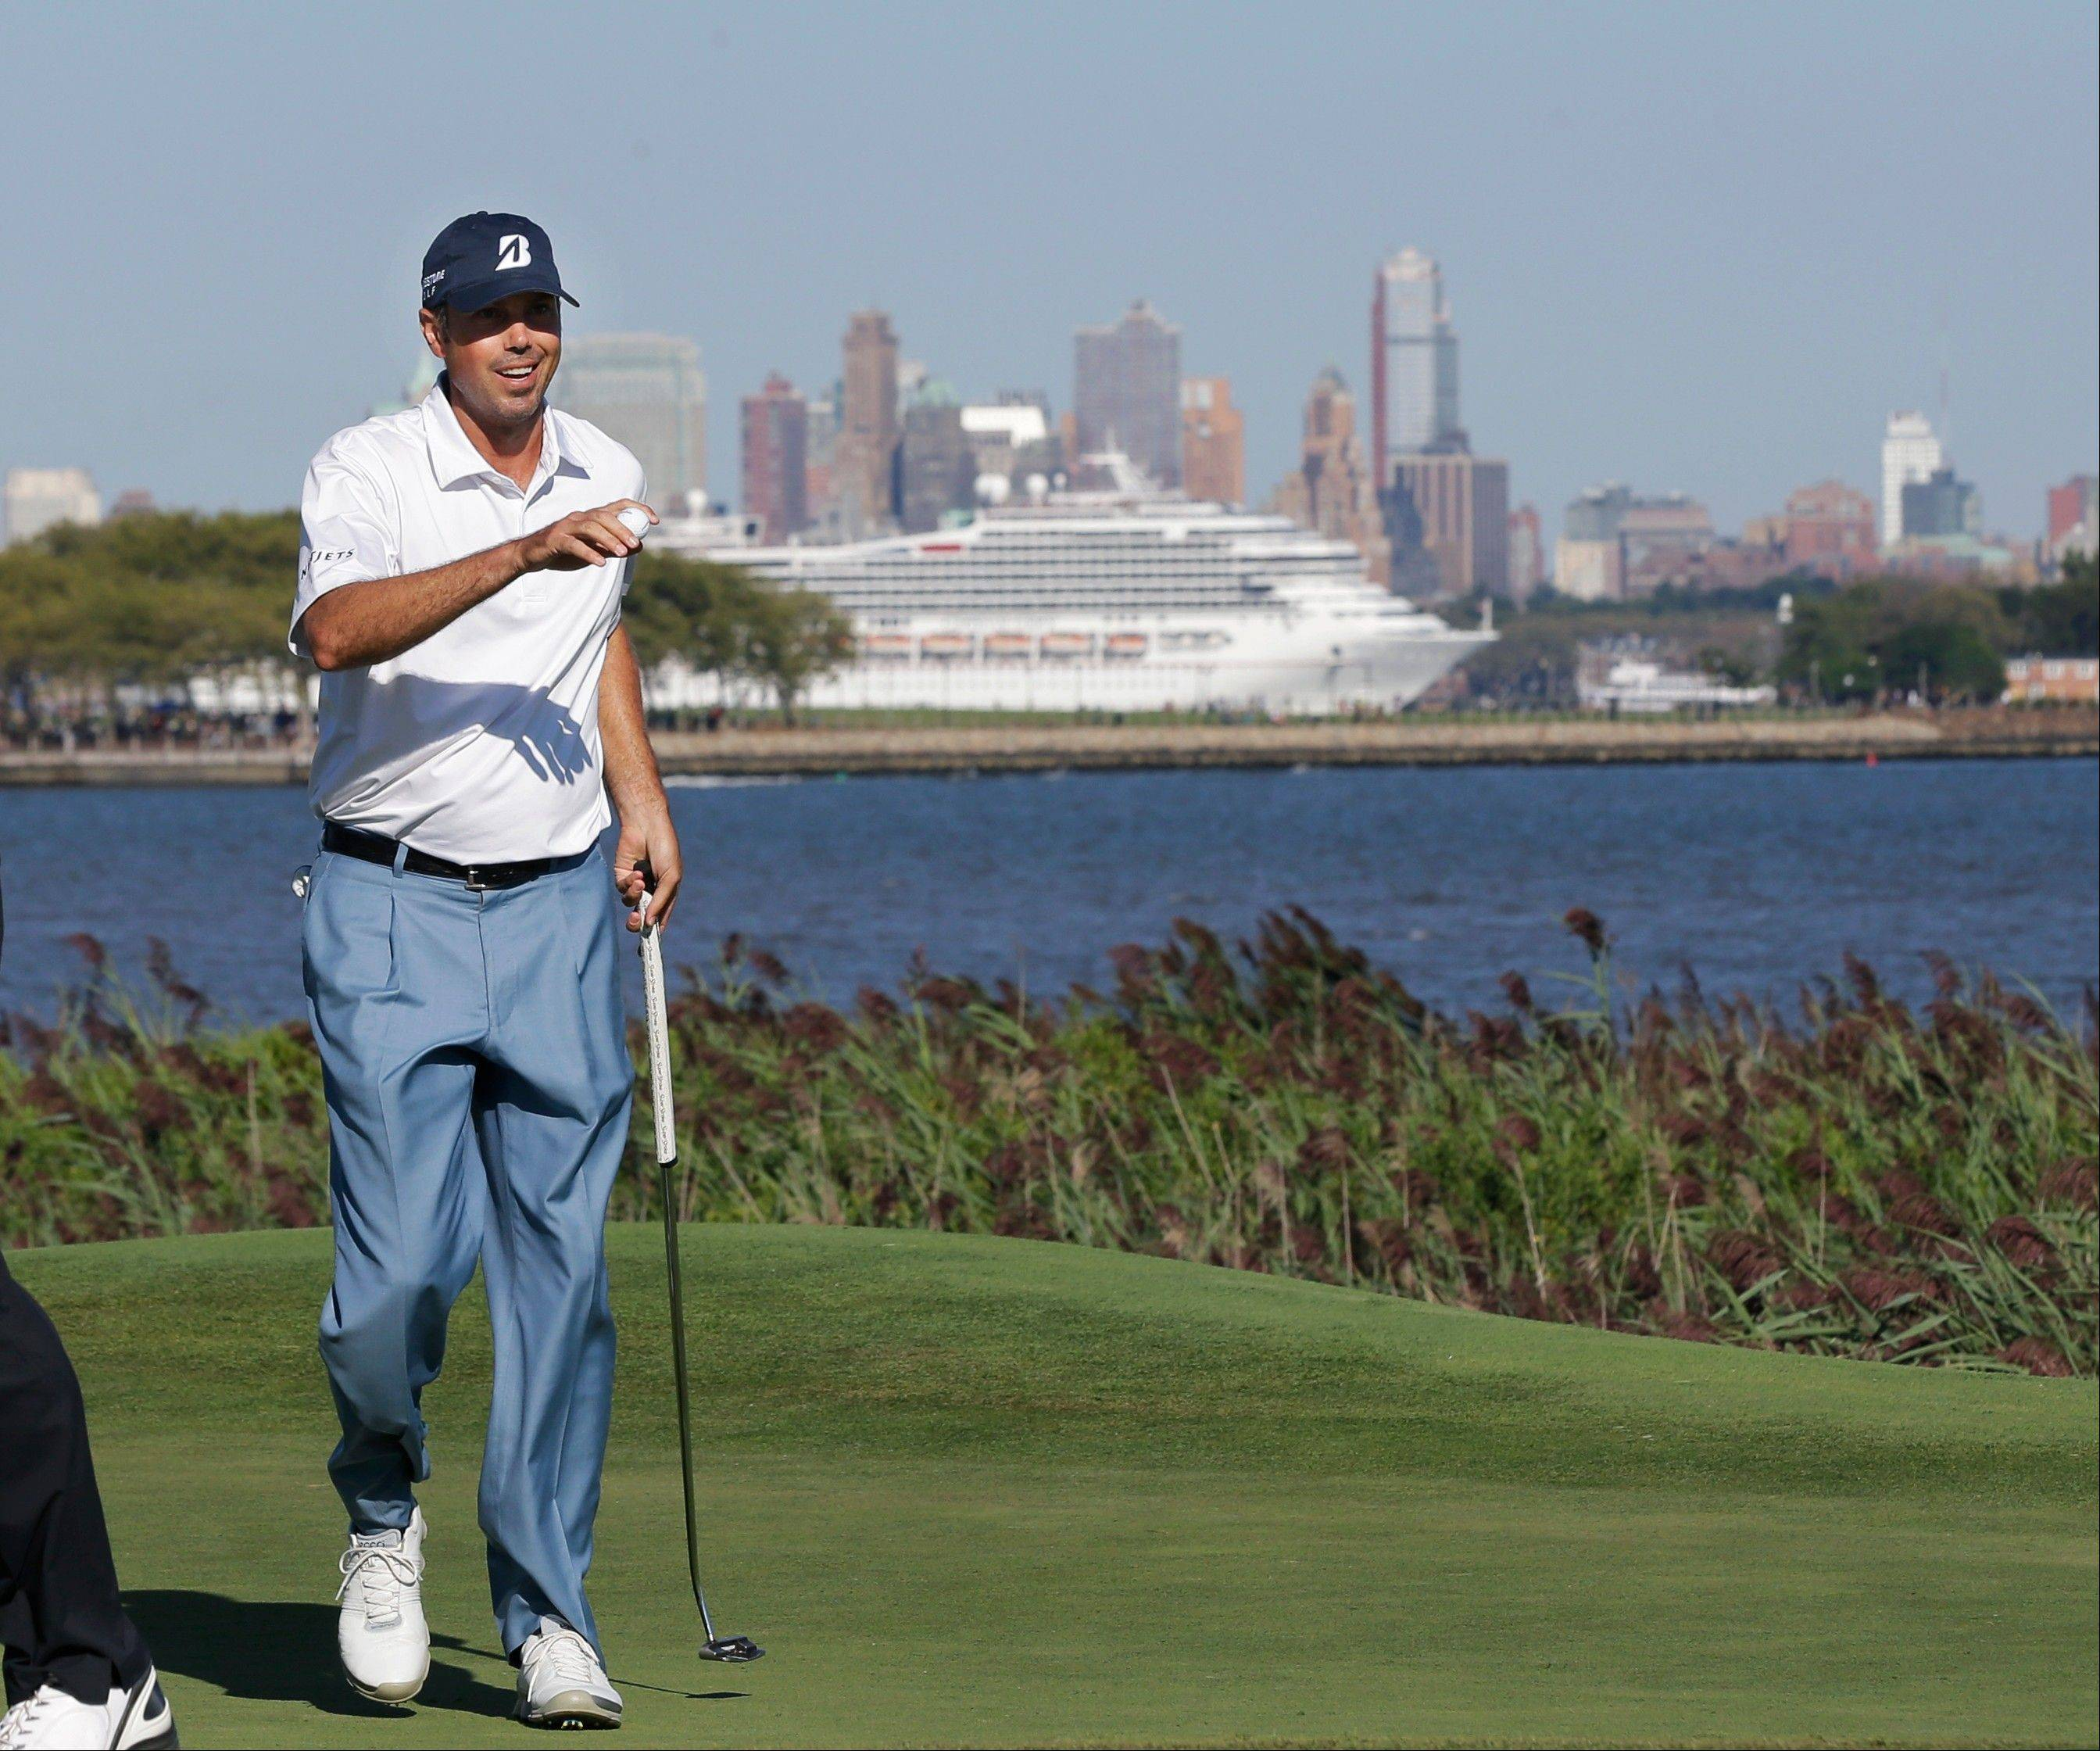 Matt Kuchar holds up his ball after making a birdie on 14th hole during the third round of The Barclays golf tournament Saturday, Aug. 24, 2013, in Jersey City, N.J.